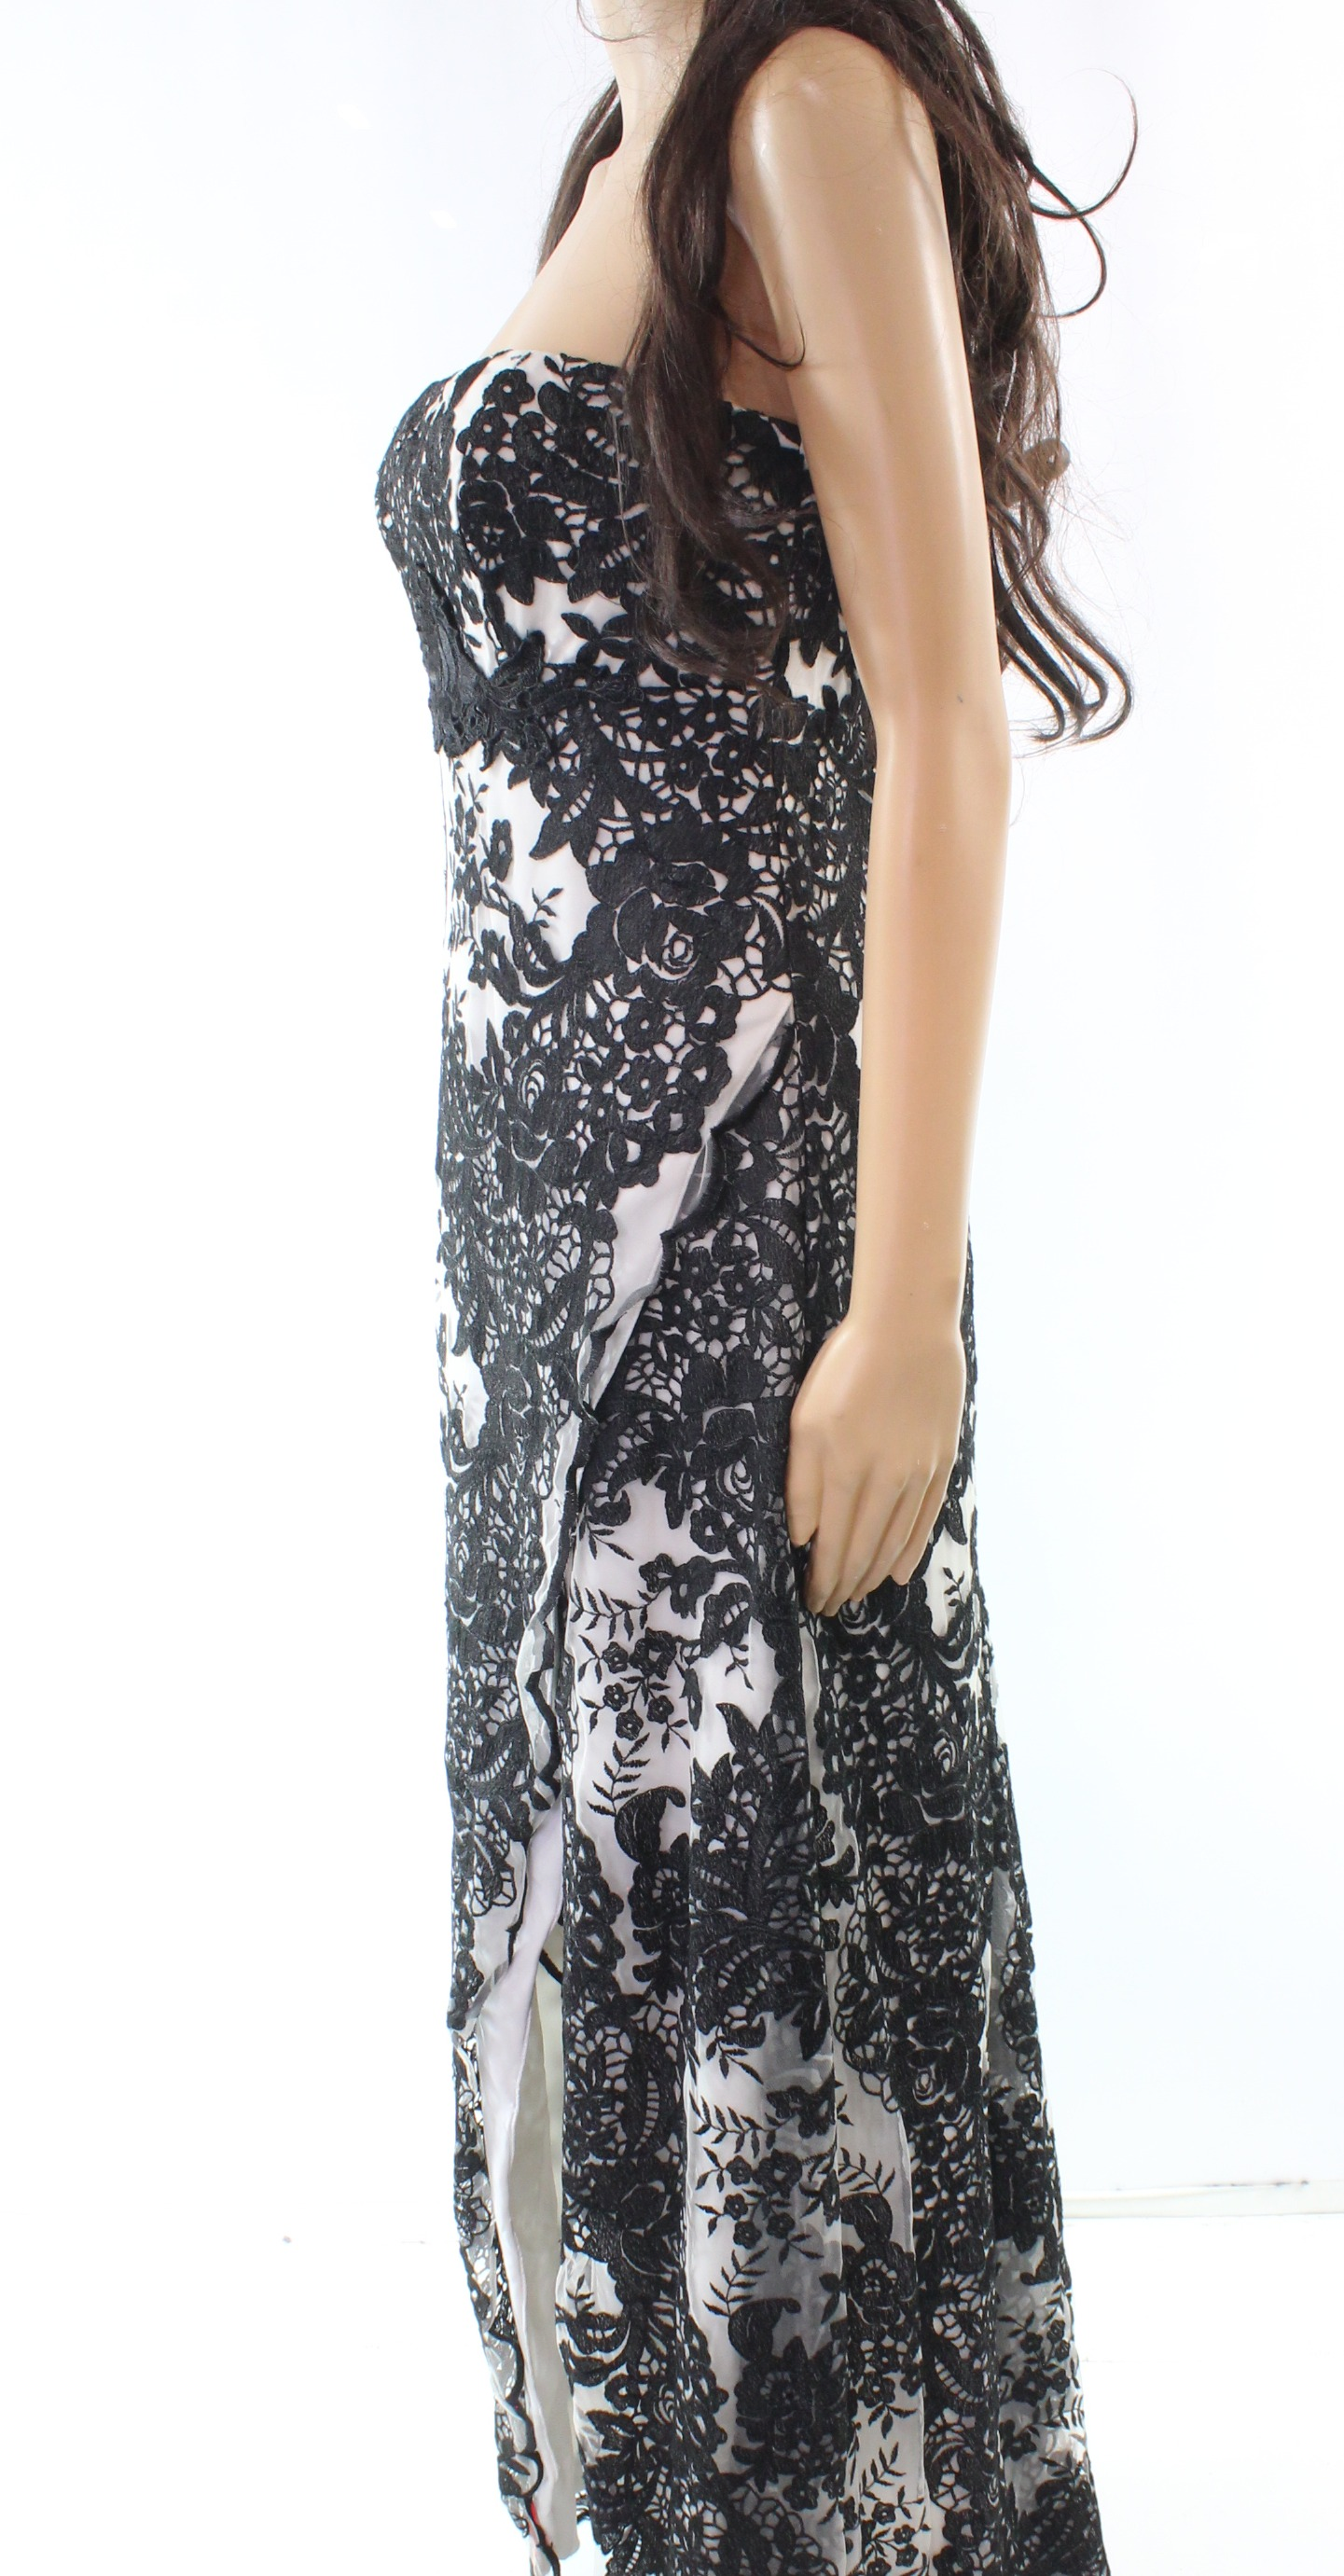 ec04a2d3503 RETAIL PRICE $795.00 BEST PRICE GUARANTEED! Brand:Marchesa Notte  Condition:Pre-owned. Category:Dresses Color: Blacks Size Type: Regular Size  (Women's): 8